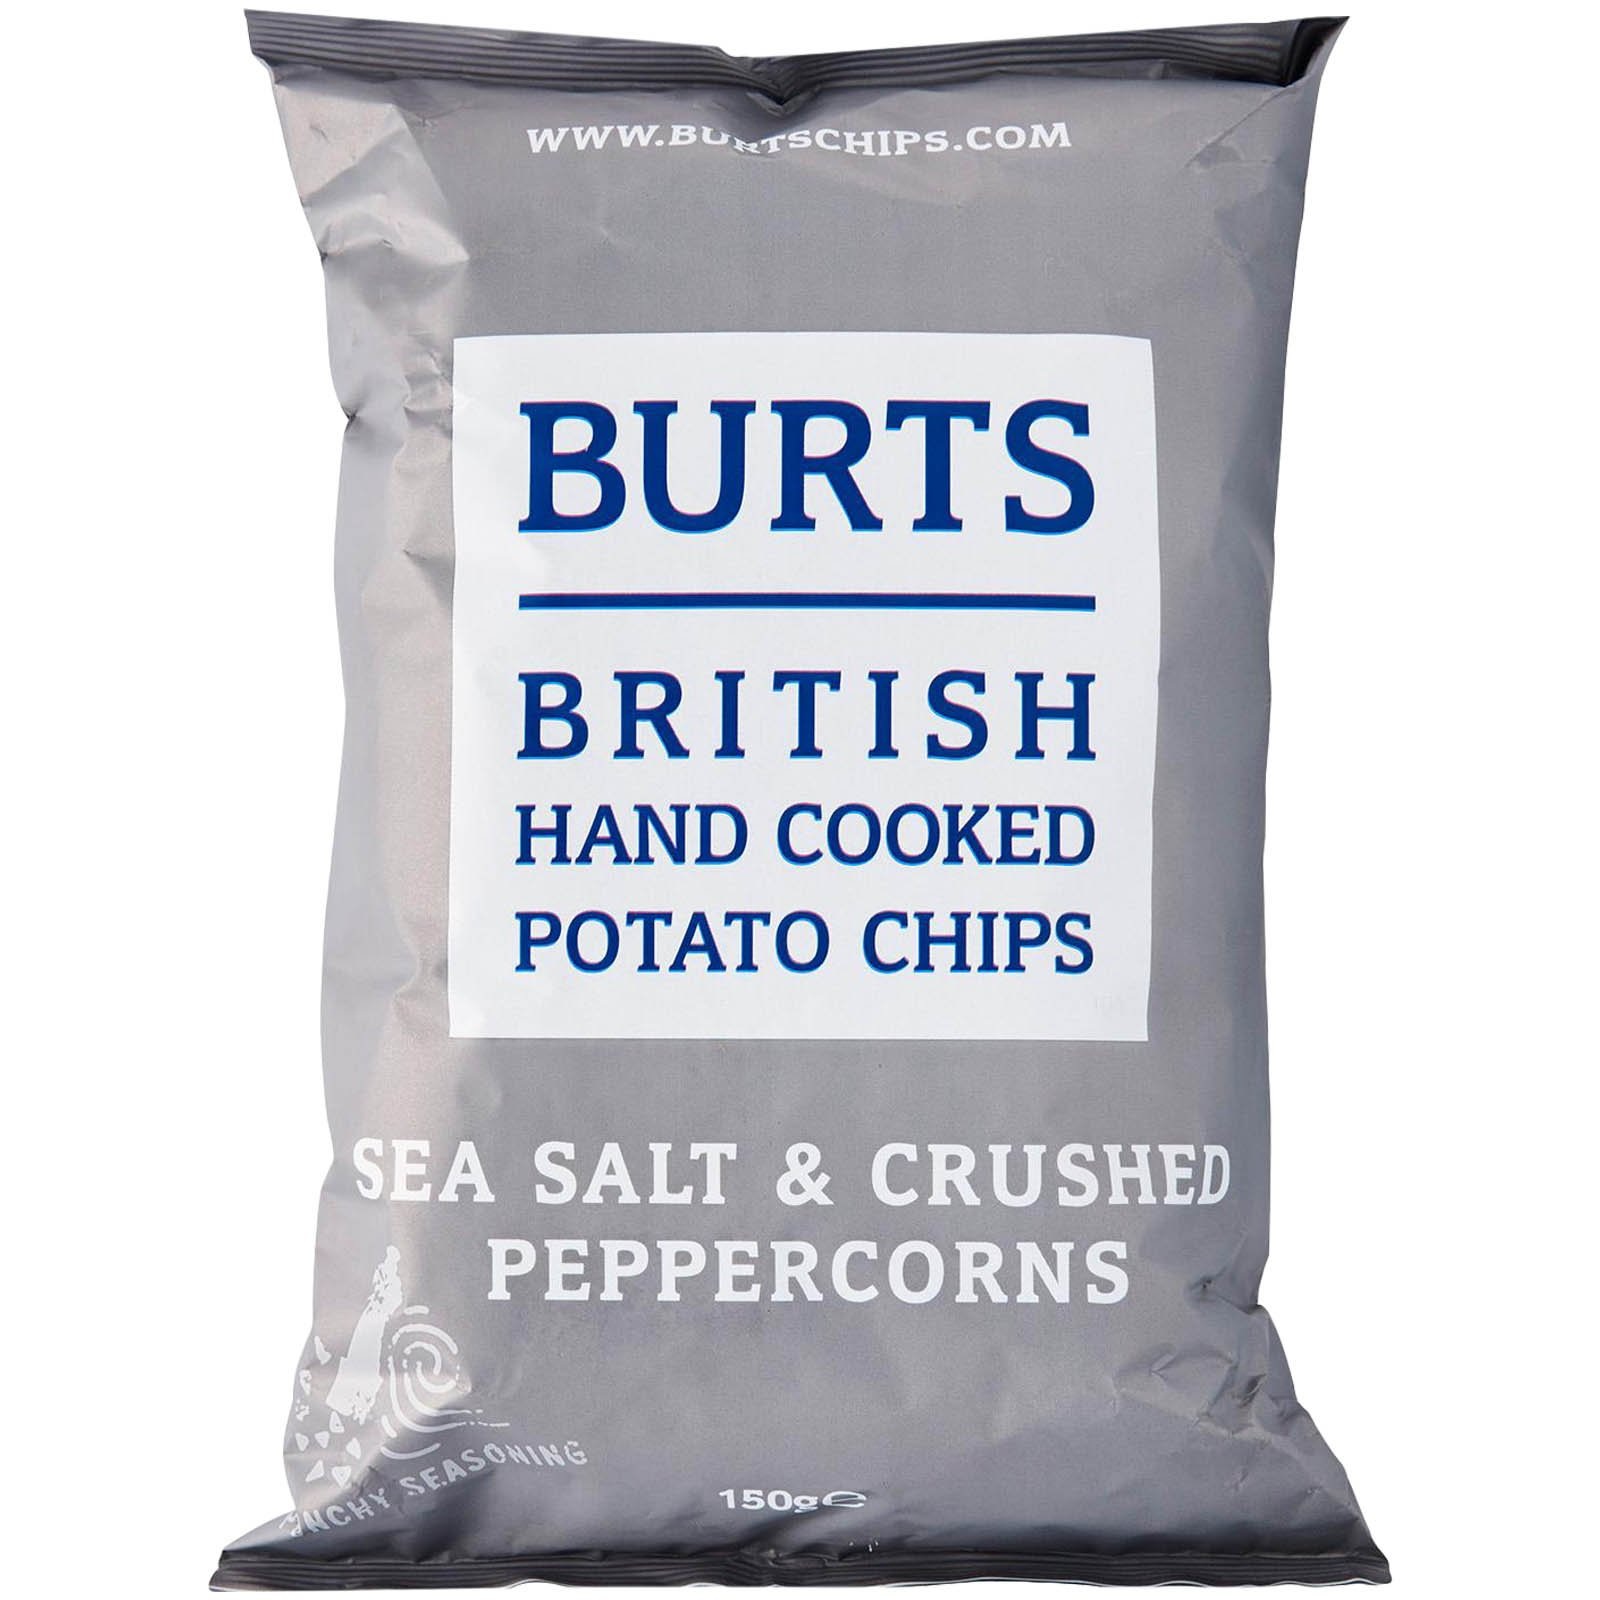 Burts Chips Sea Salt & Crushed Peppercorns 150g